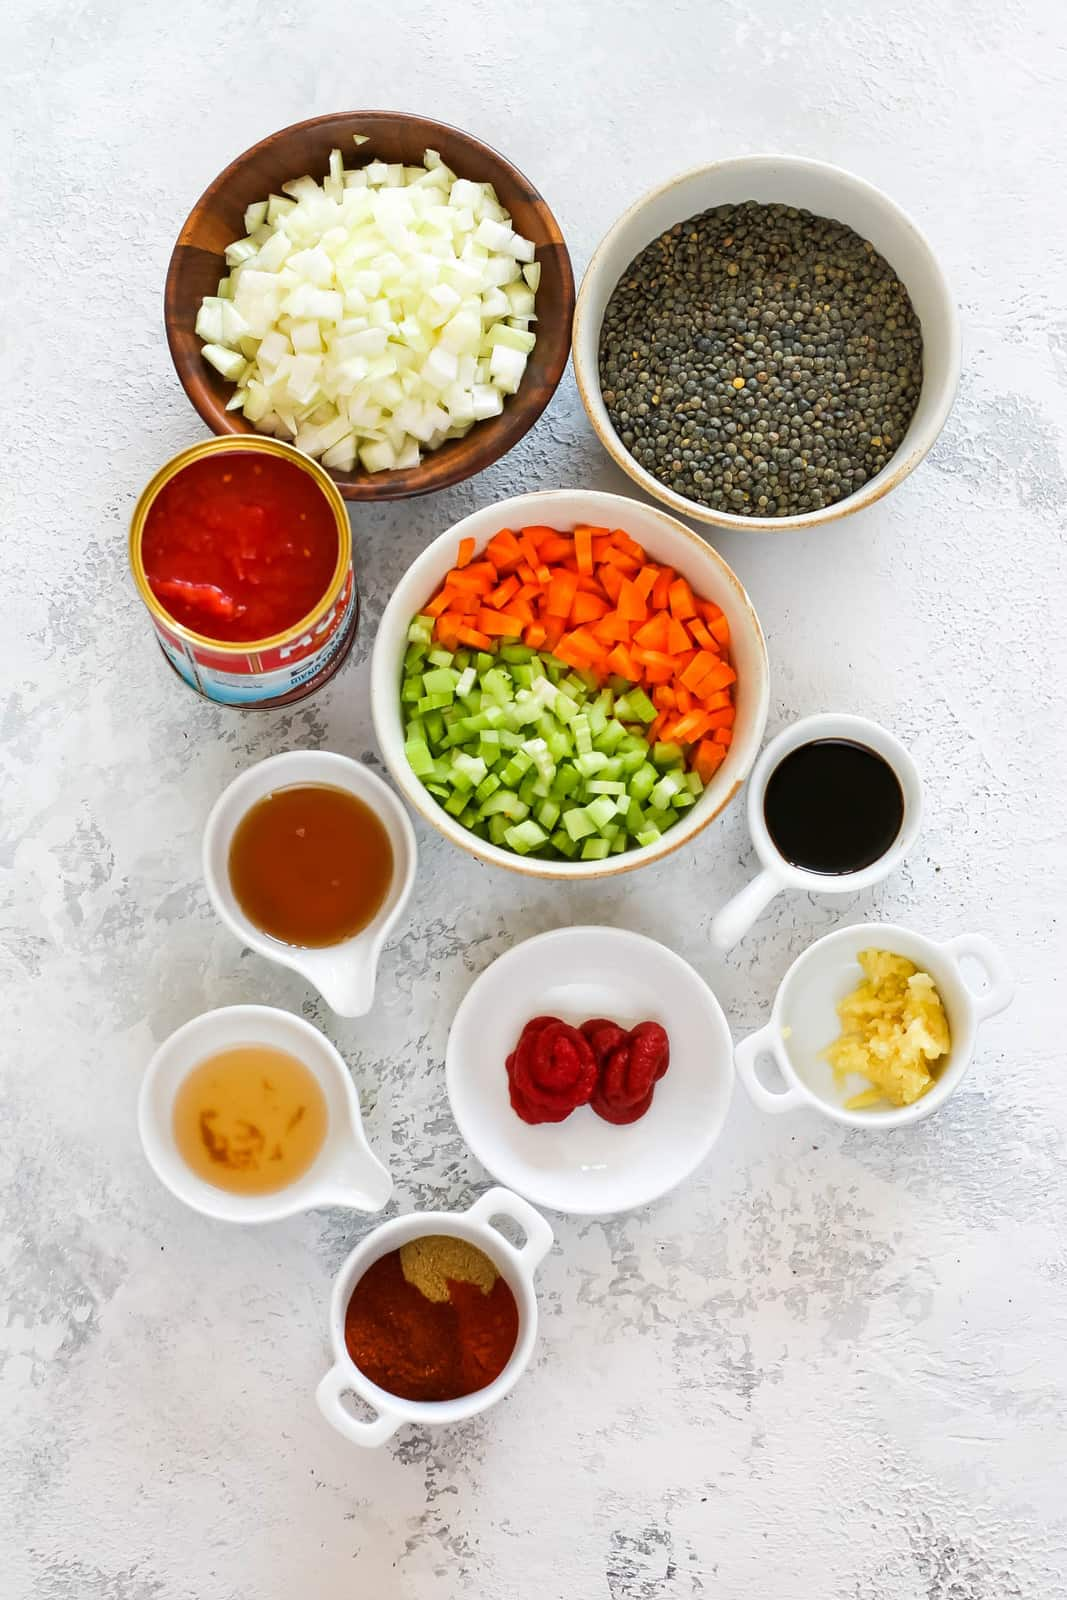 lentils, onions, carrots, celery, garlic, tomato paste, crushed tomatoes, soy sauce, and spices on a grey background